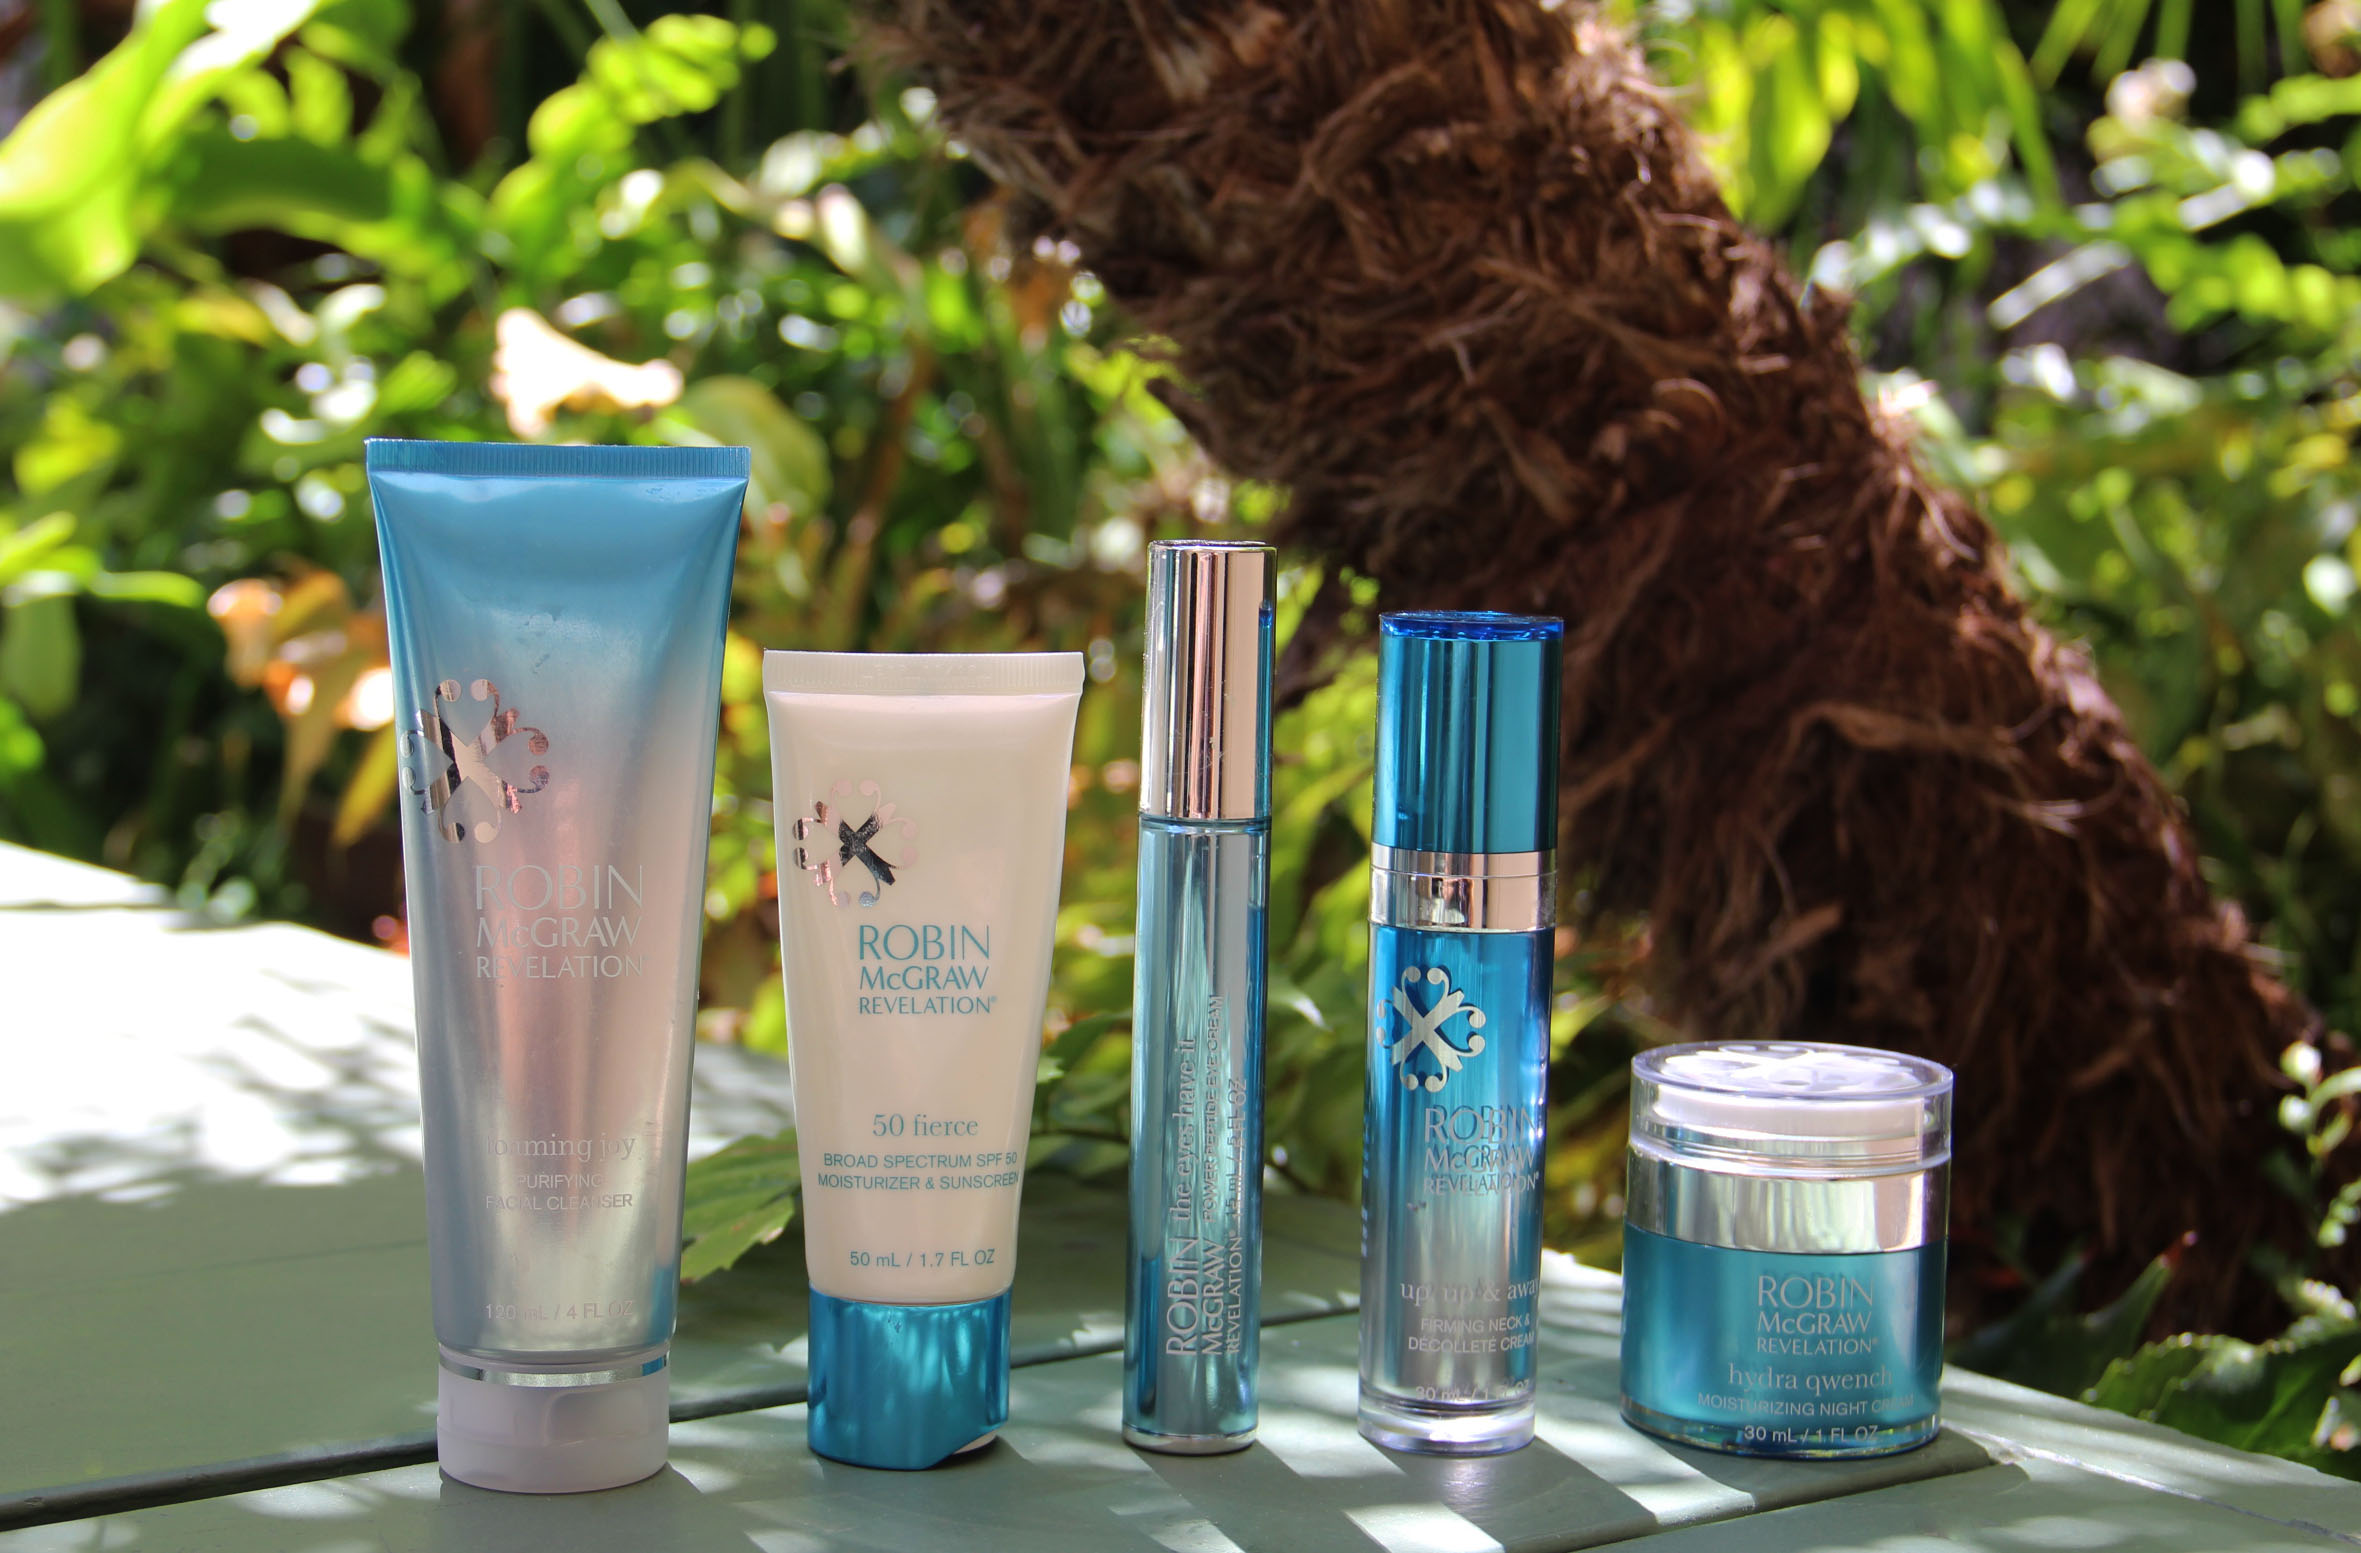 Robin McGraw Beauty Products